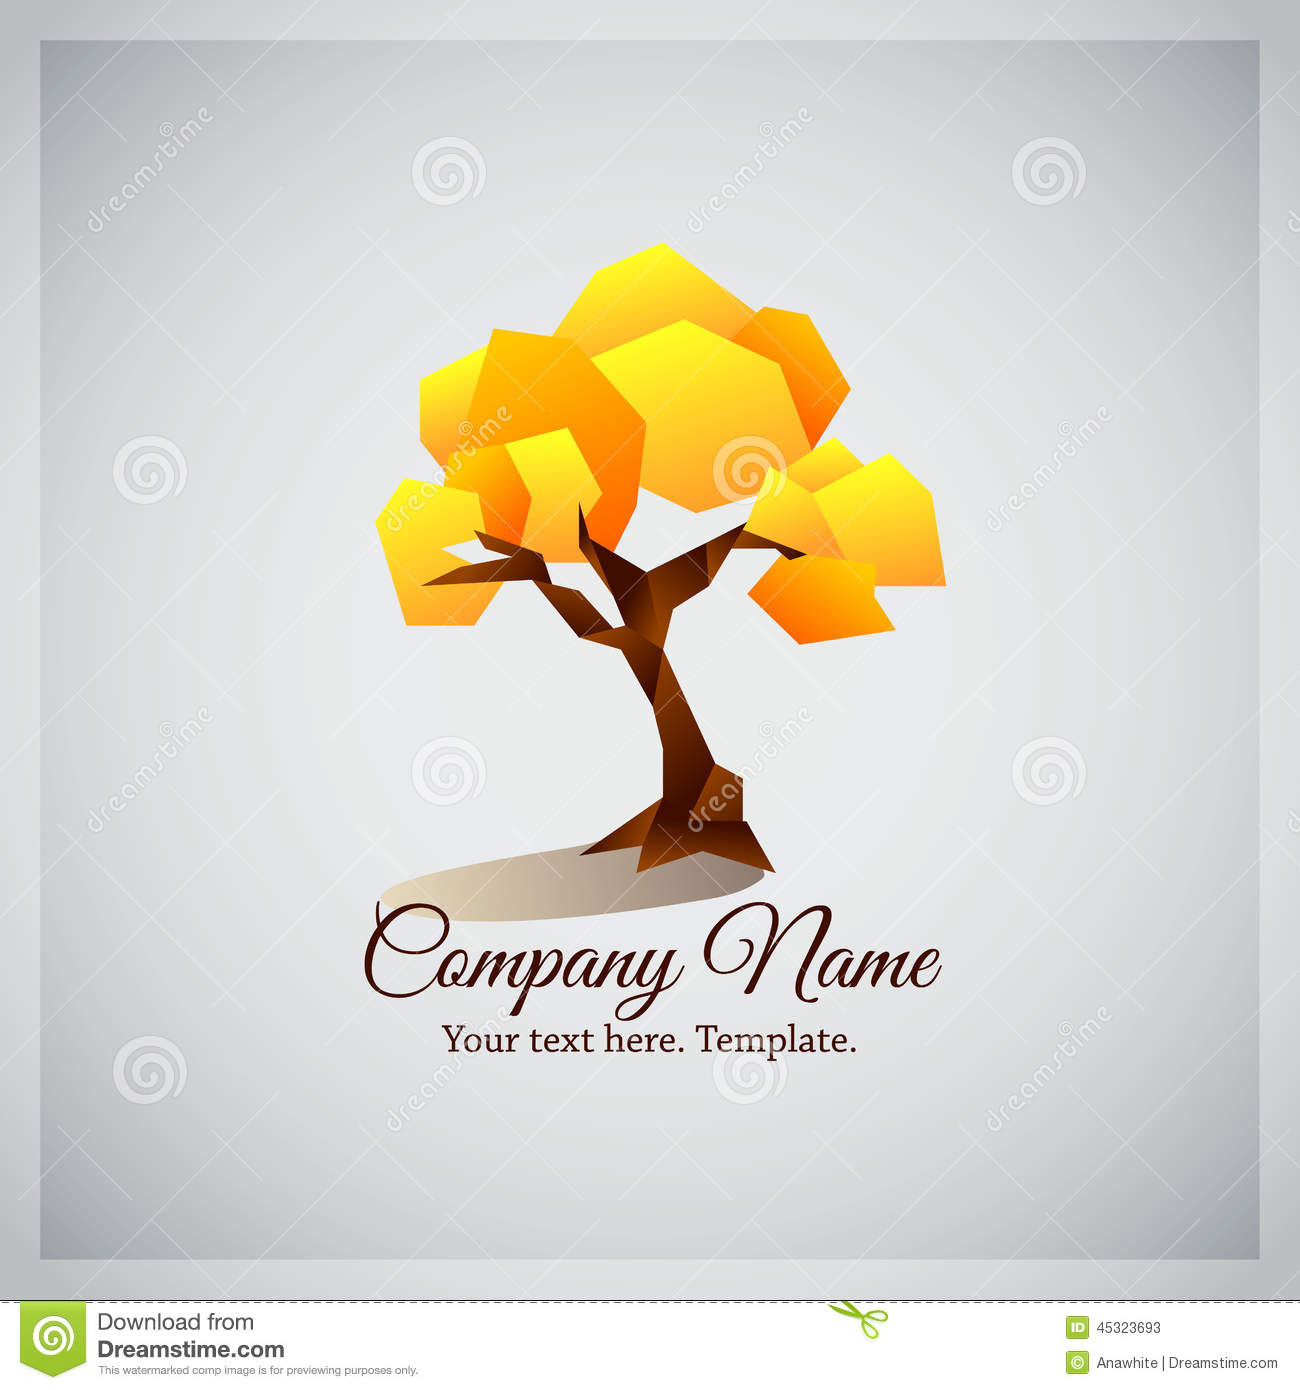 Company Business Logo With Geometric Yellow Tree Stock ...